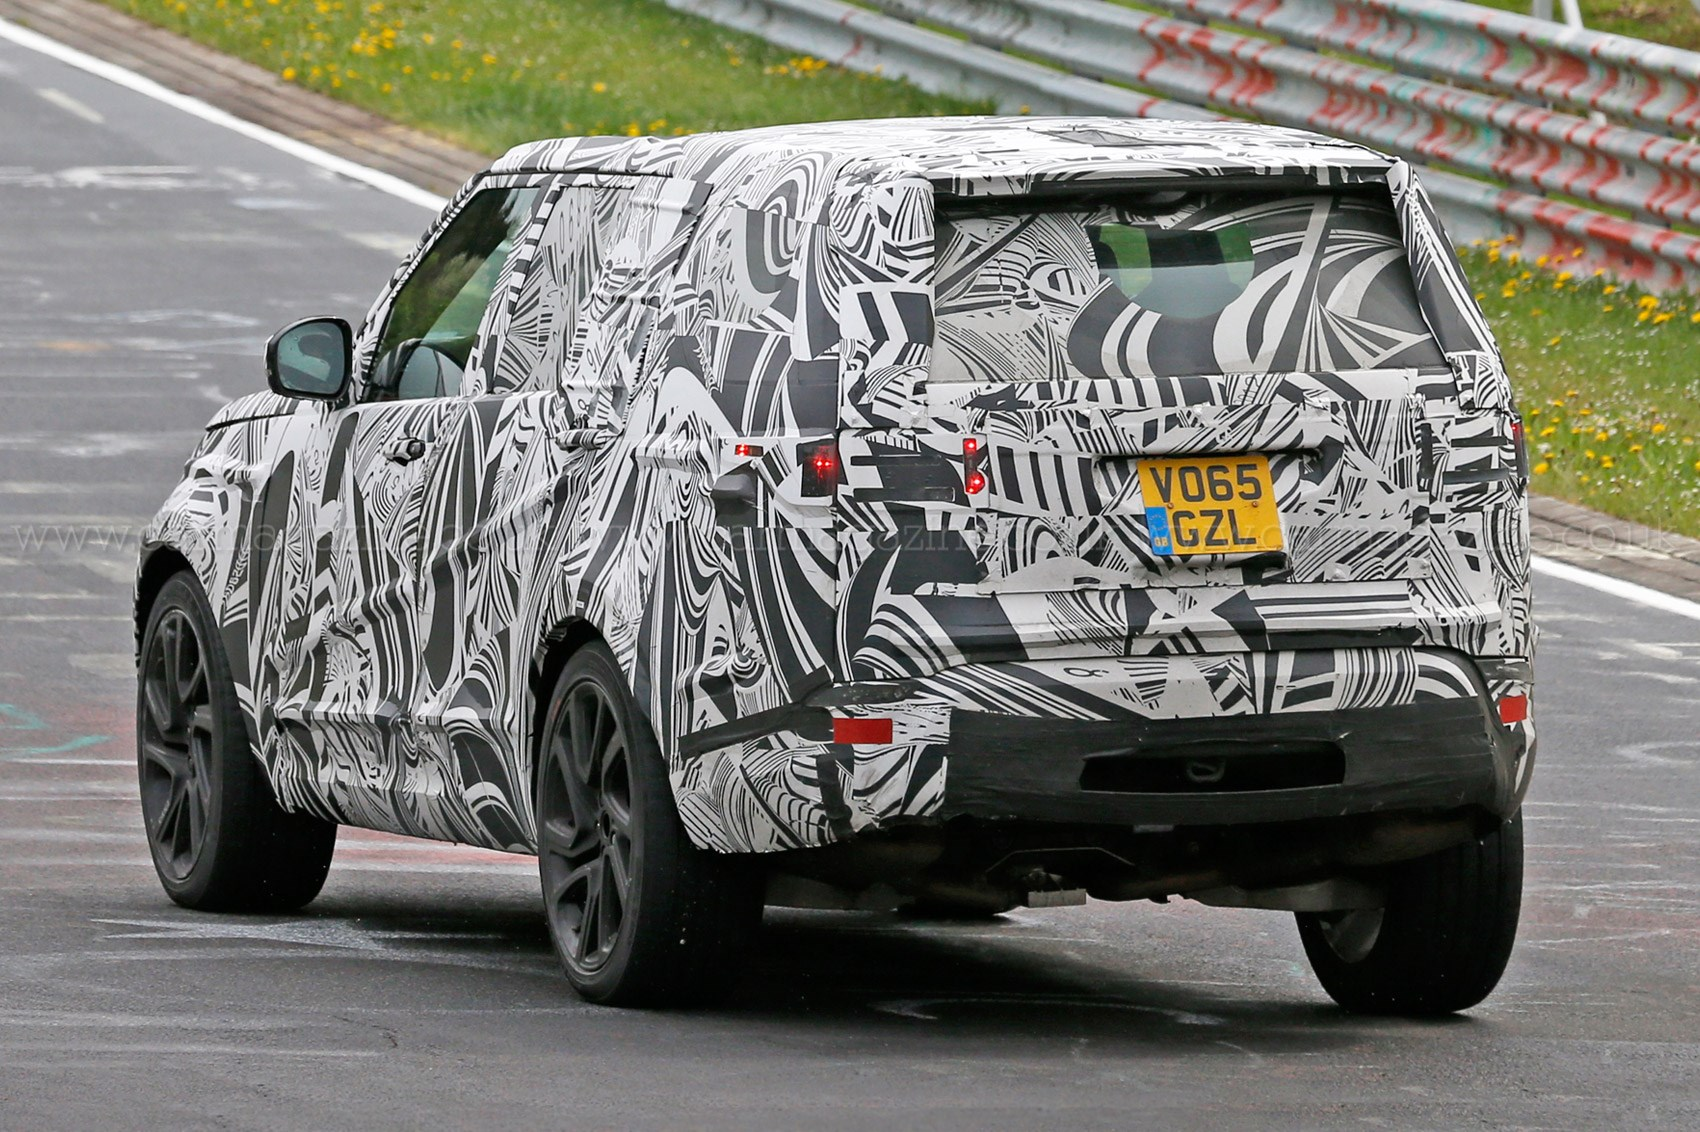 A new Discovery Land Rover s 2016 Disco spied plus info on next